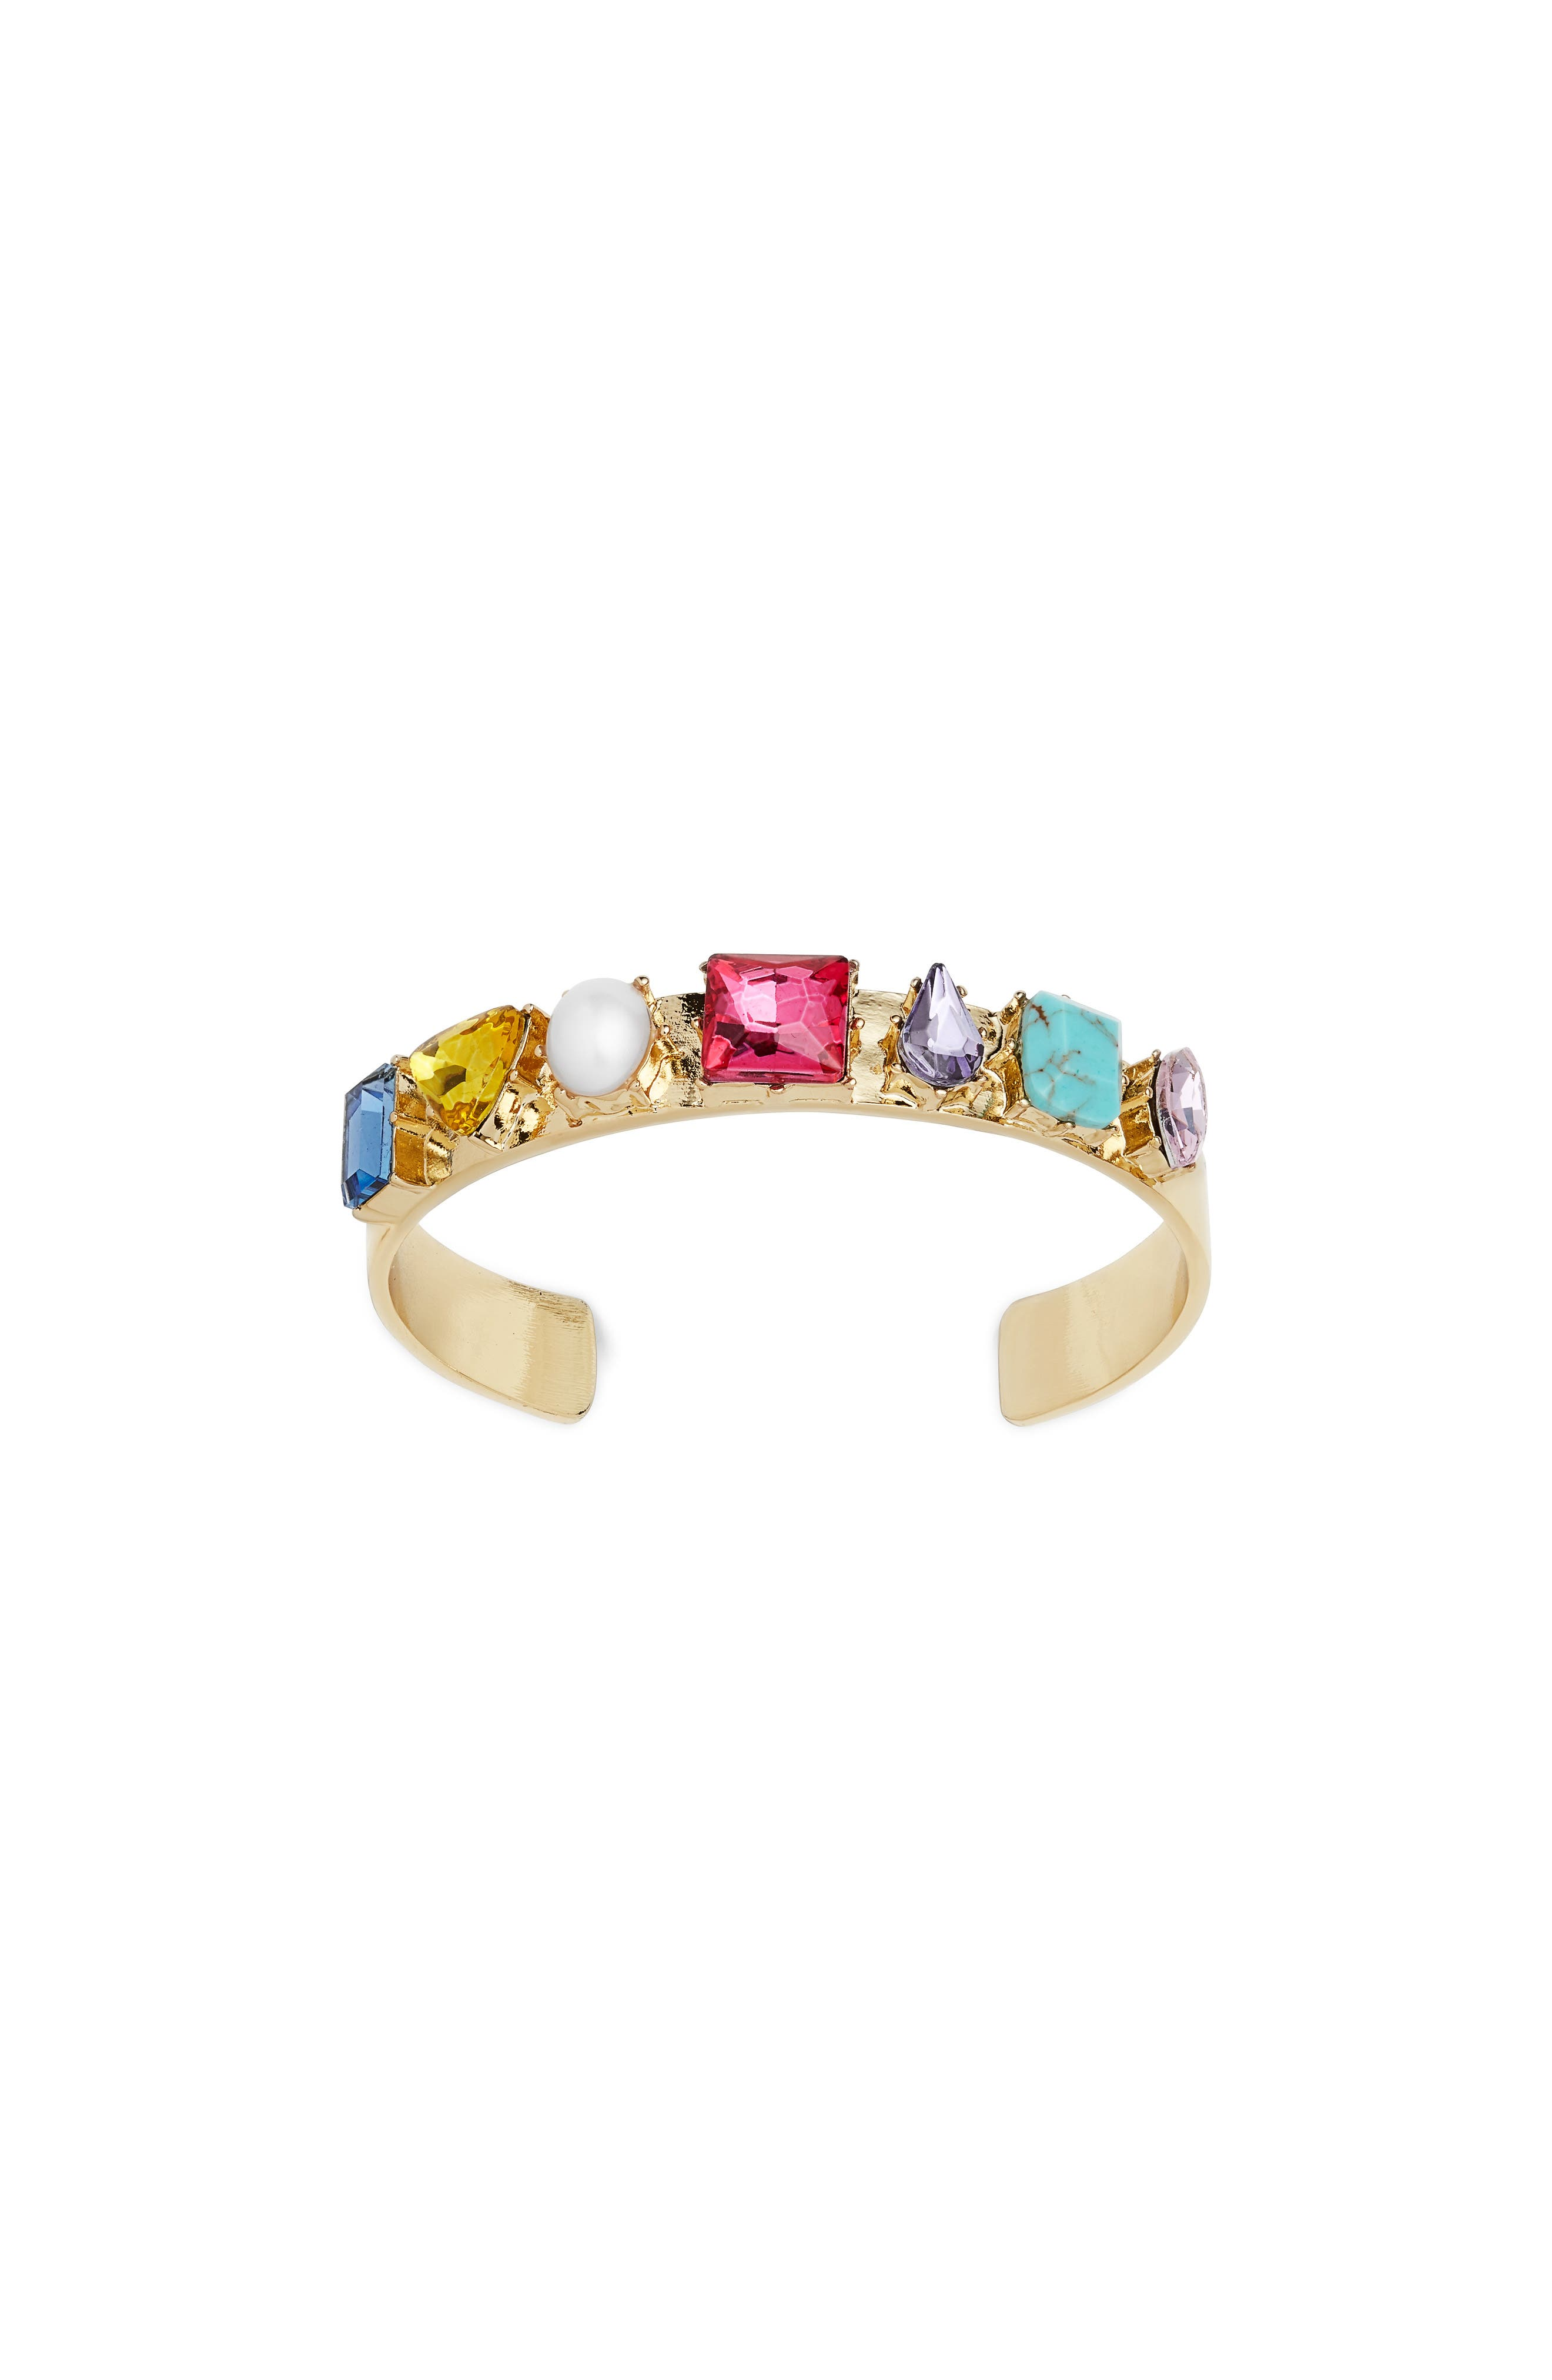 x Micaela Erlanger She's with the Band Cuff,                         Main,                         color, MULTI/ GOLD